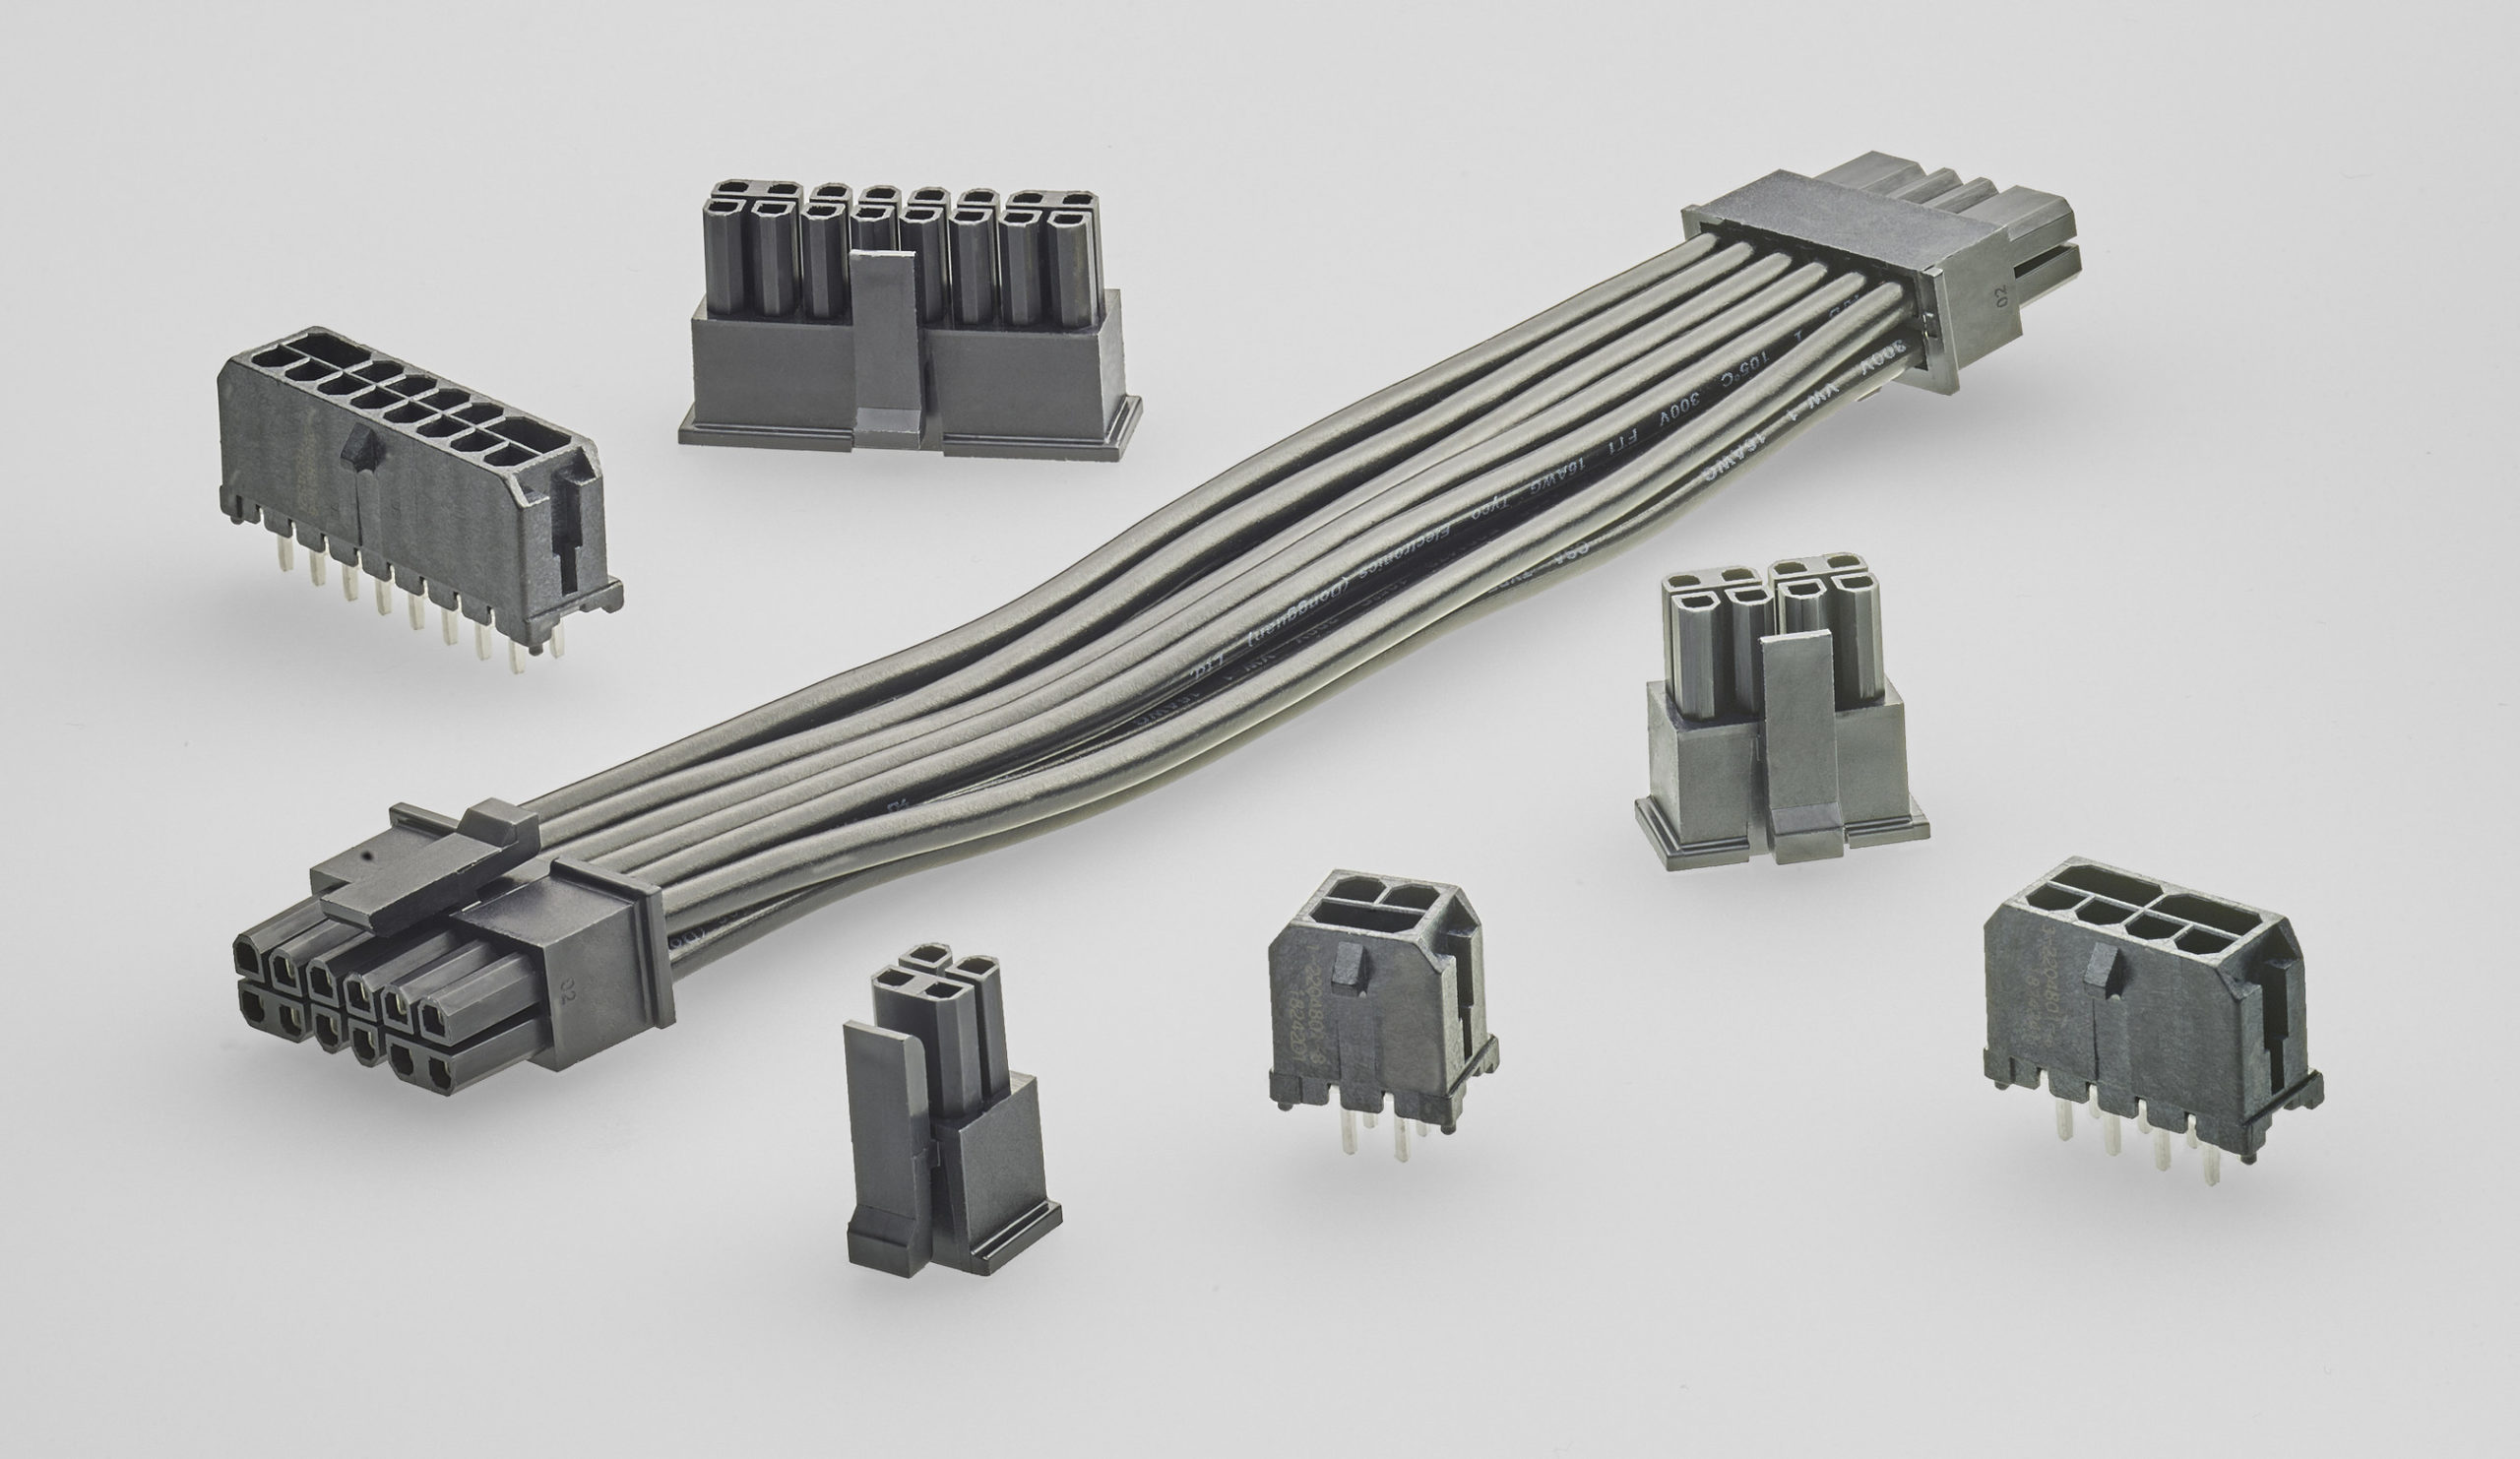 ELCON Micro wire-to-board power cable plugs and cable assemblies now available delivering up to 12.5A per pin in 3.0mm footprint